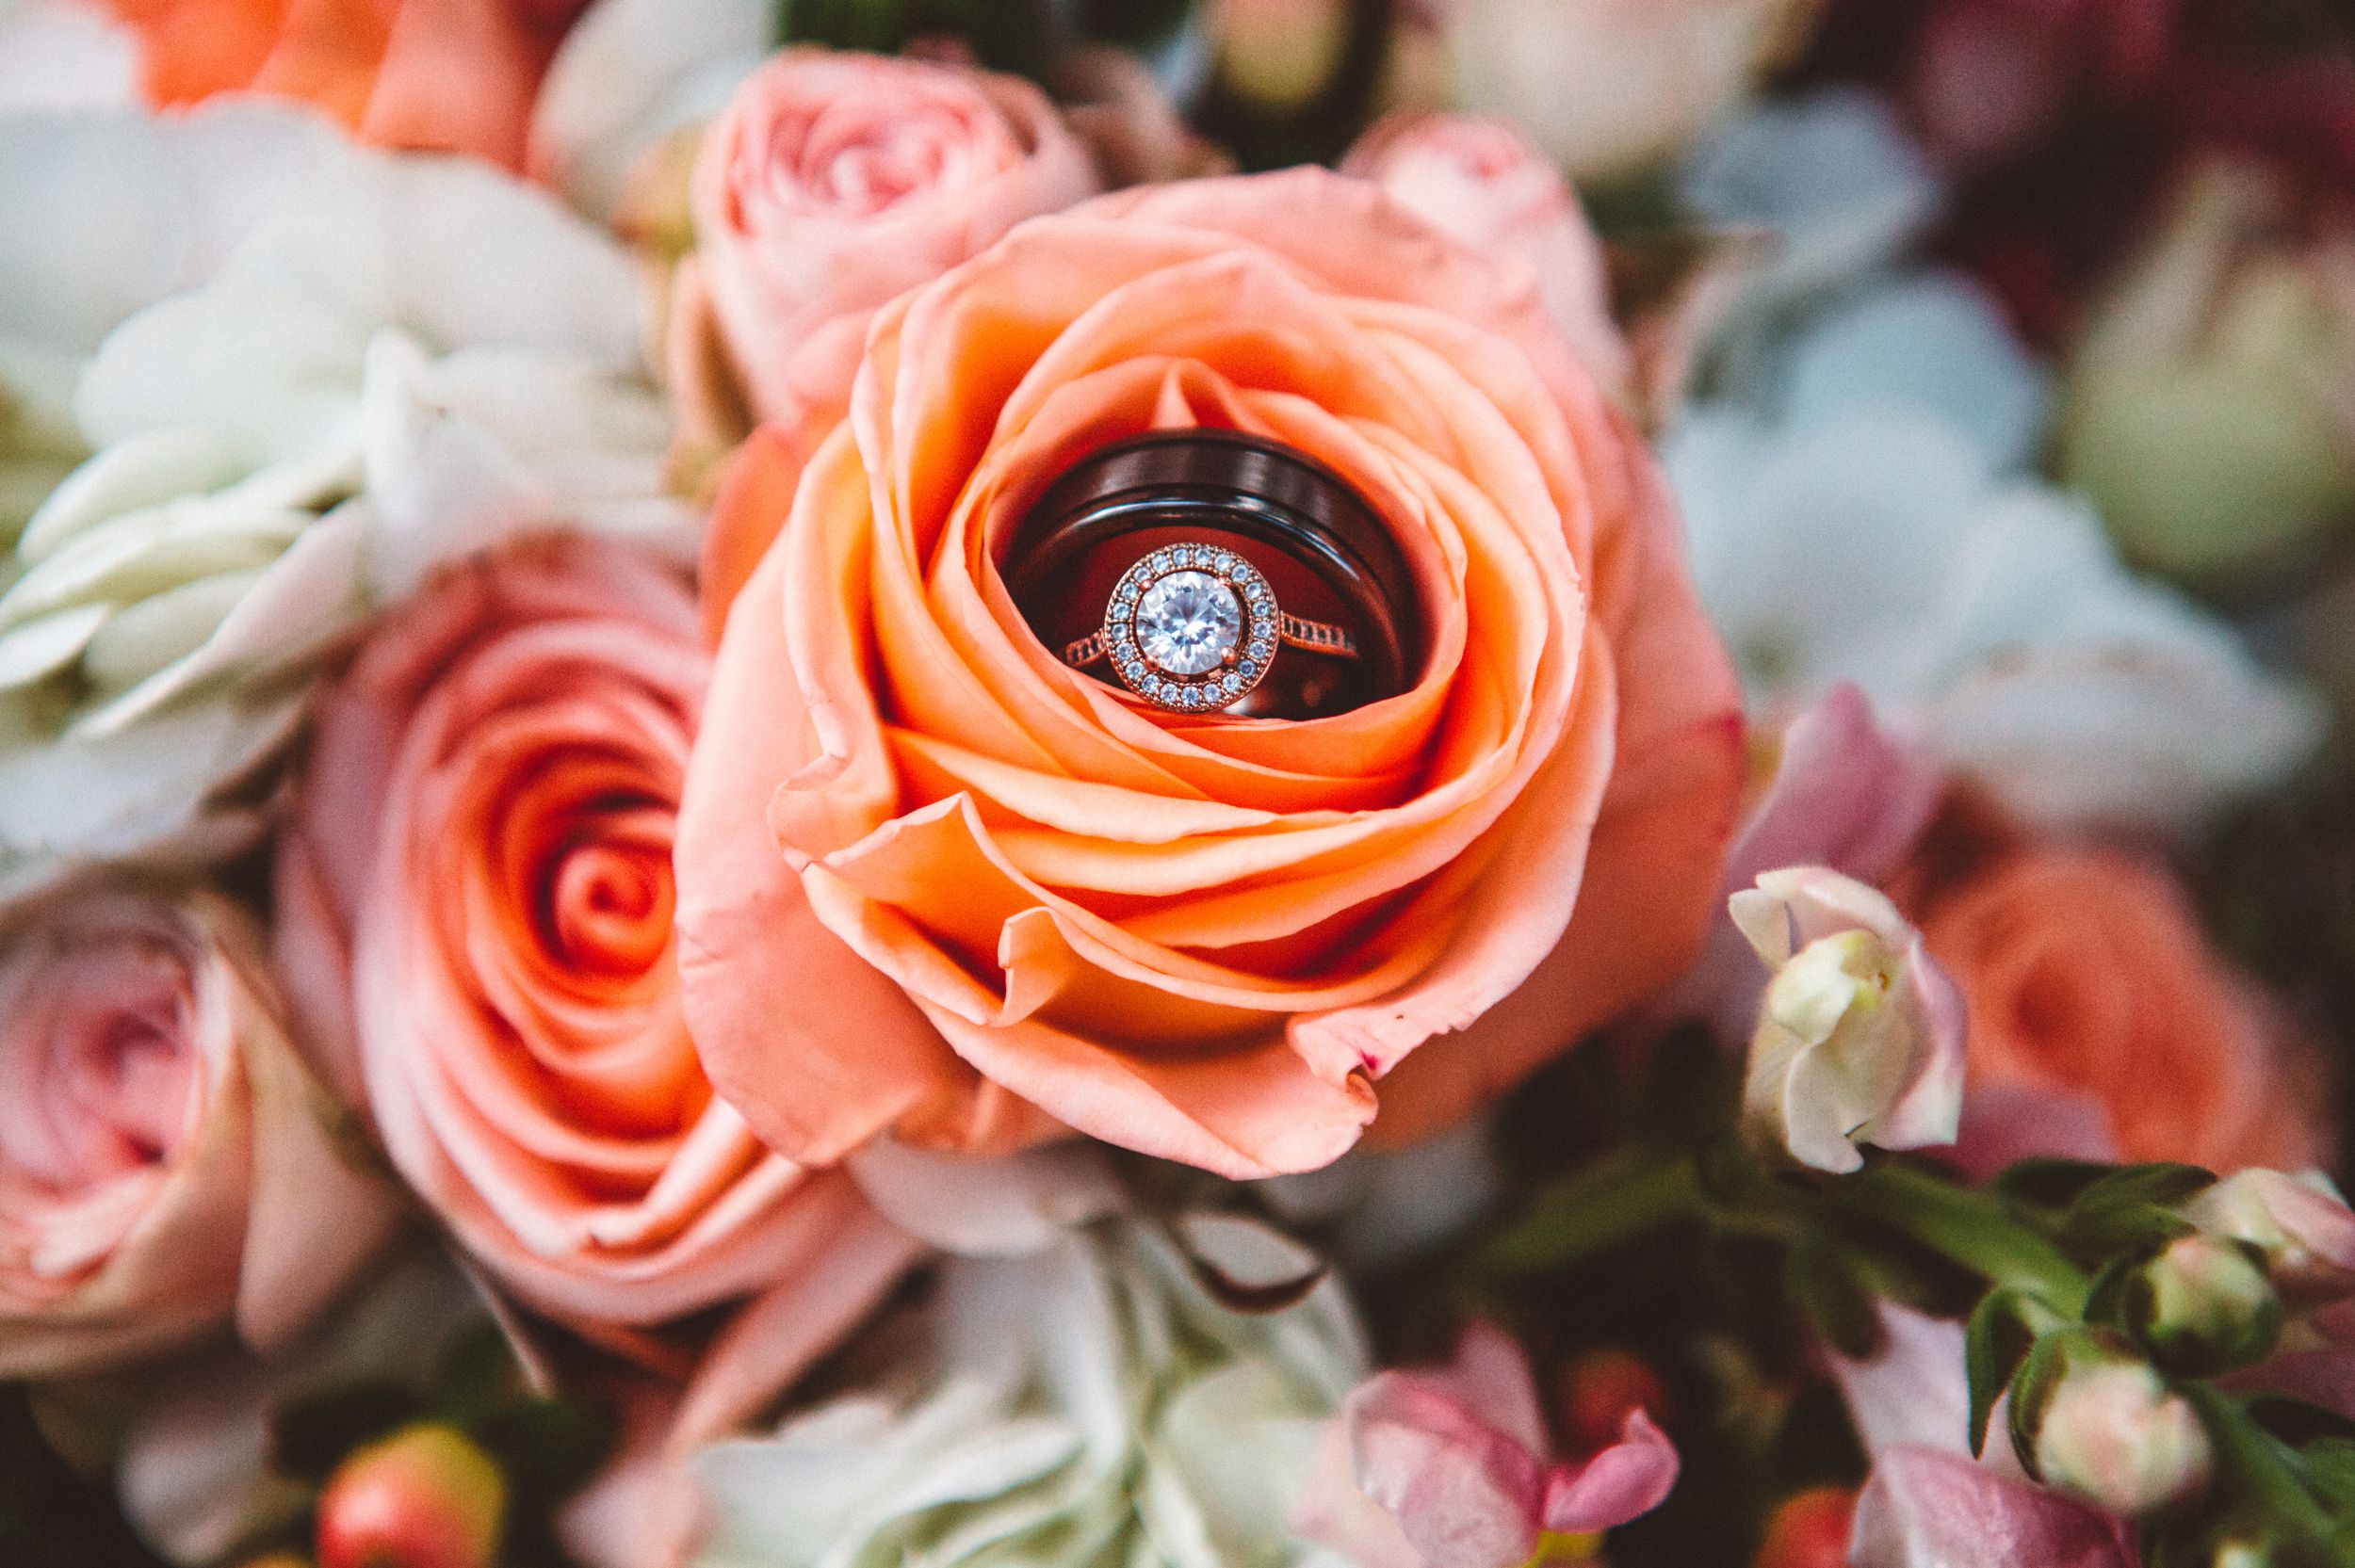 Creative Wedding Ring photo with Coral Organic Rose Bouquet in orlando.jpg